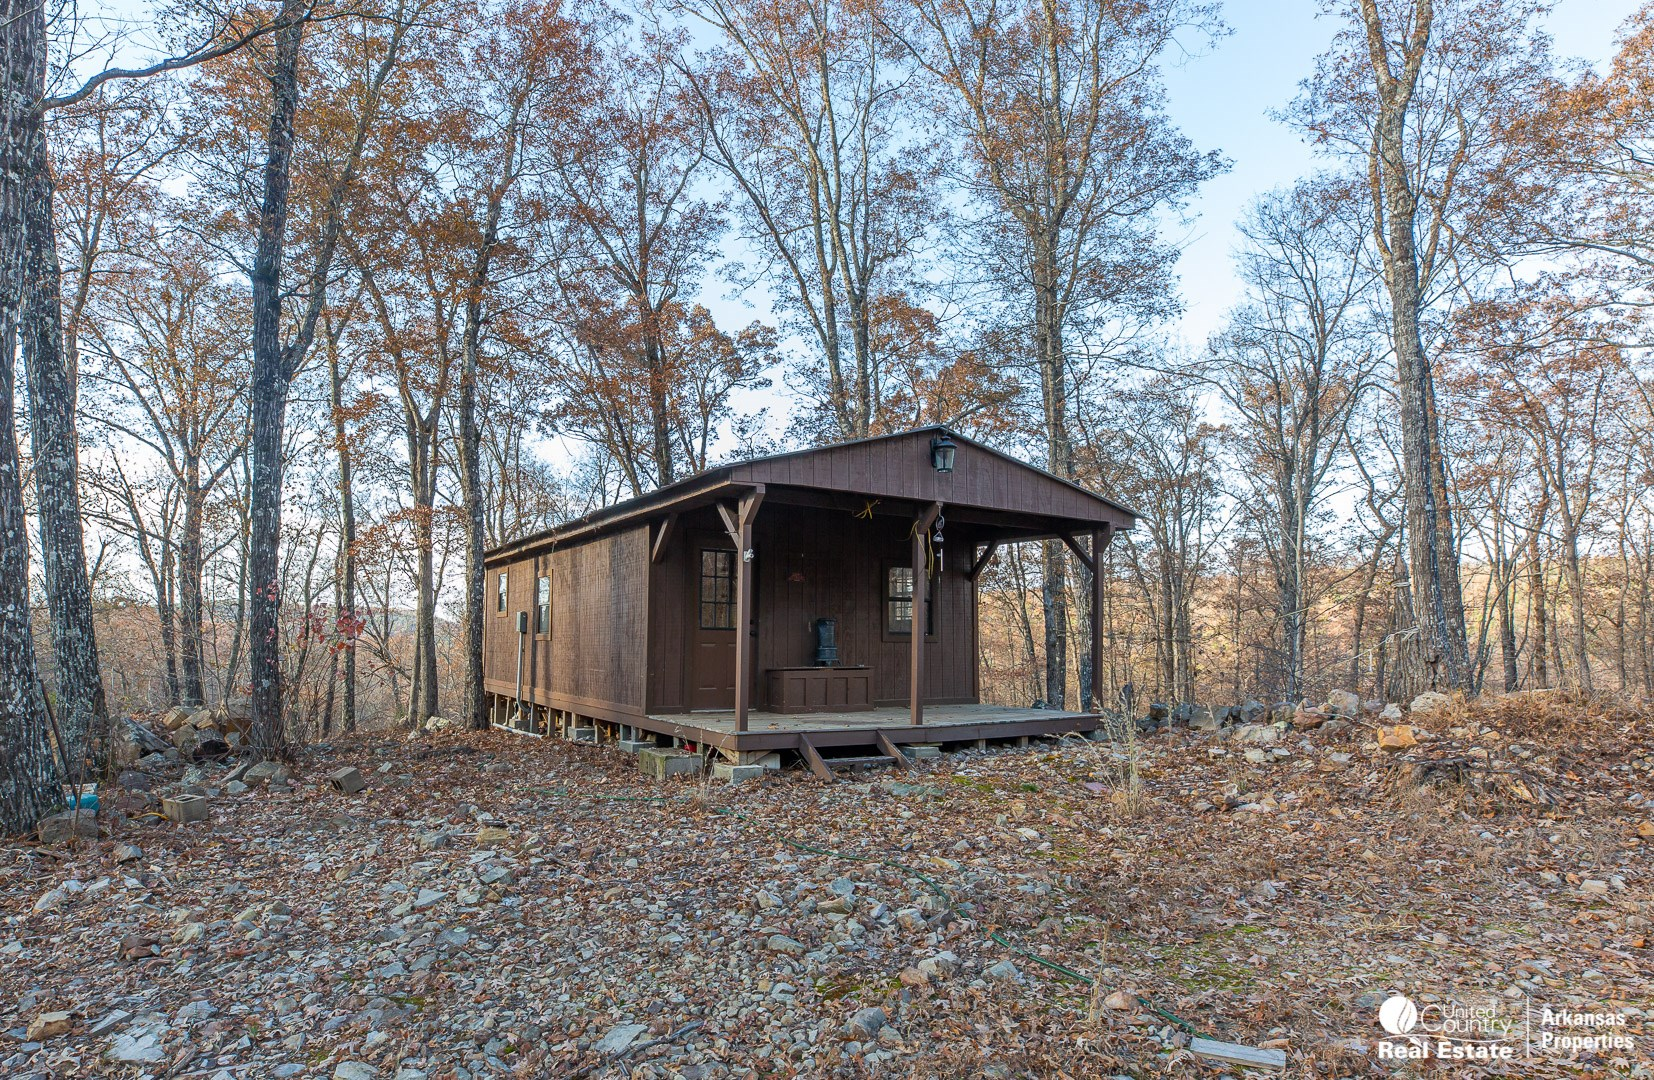 Cabin for sale in Ouachita National Forest